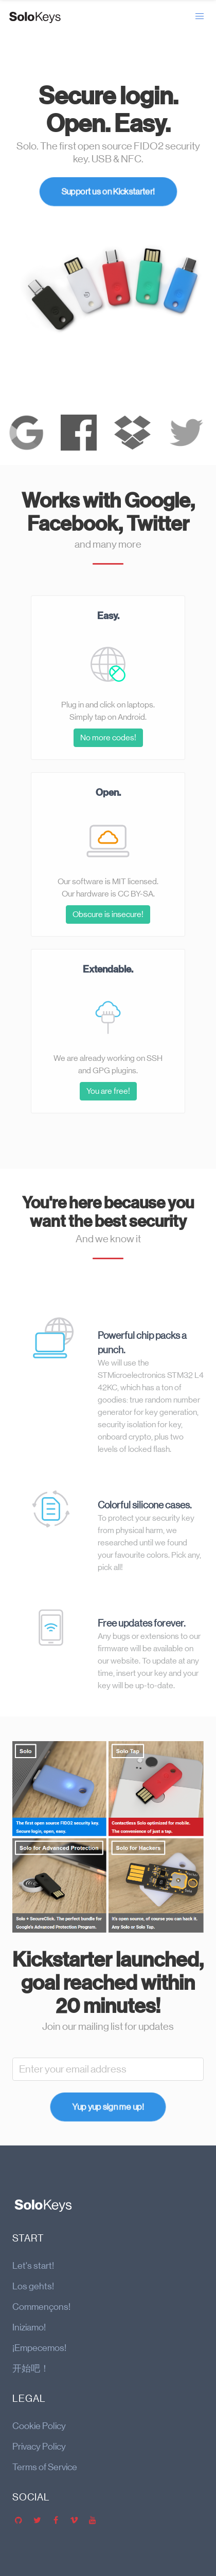 Example of Design for Computers & Electronics, Computer Security, Mobile Landing Page by solokeys.com | Mobile Landing Page Design